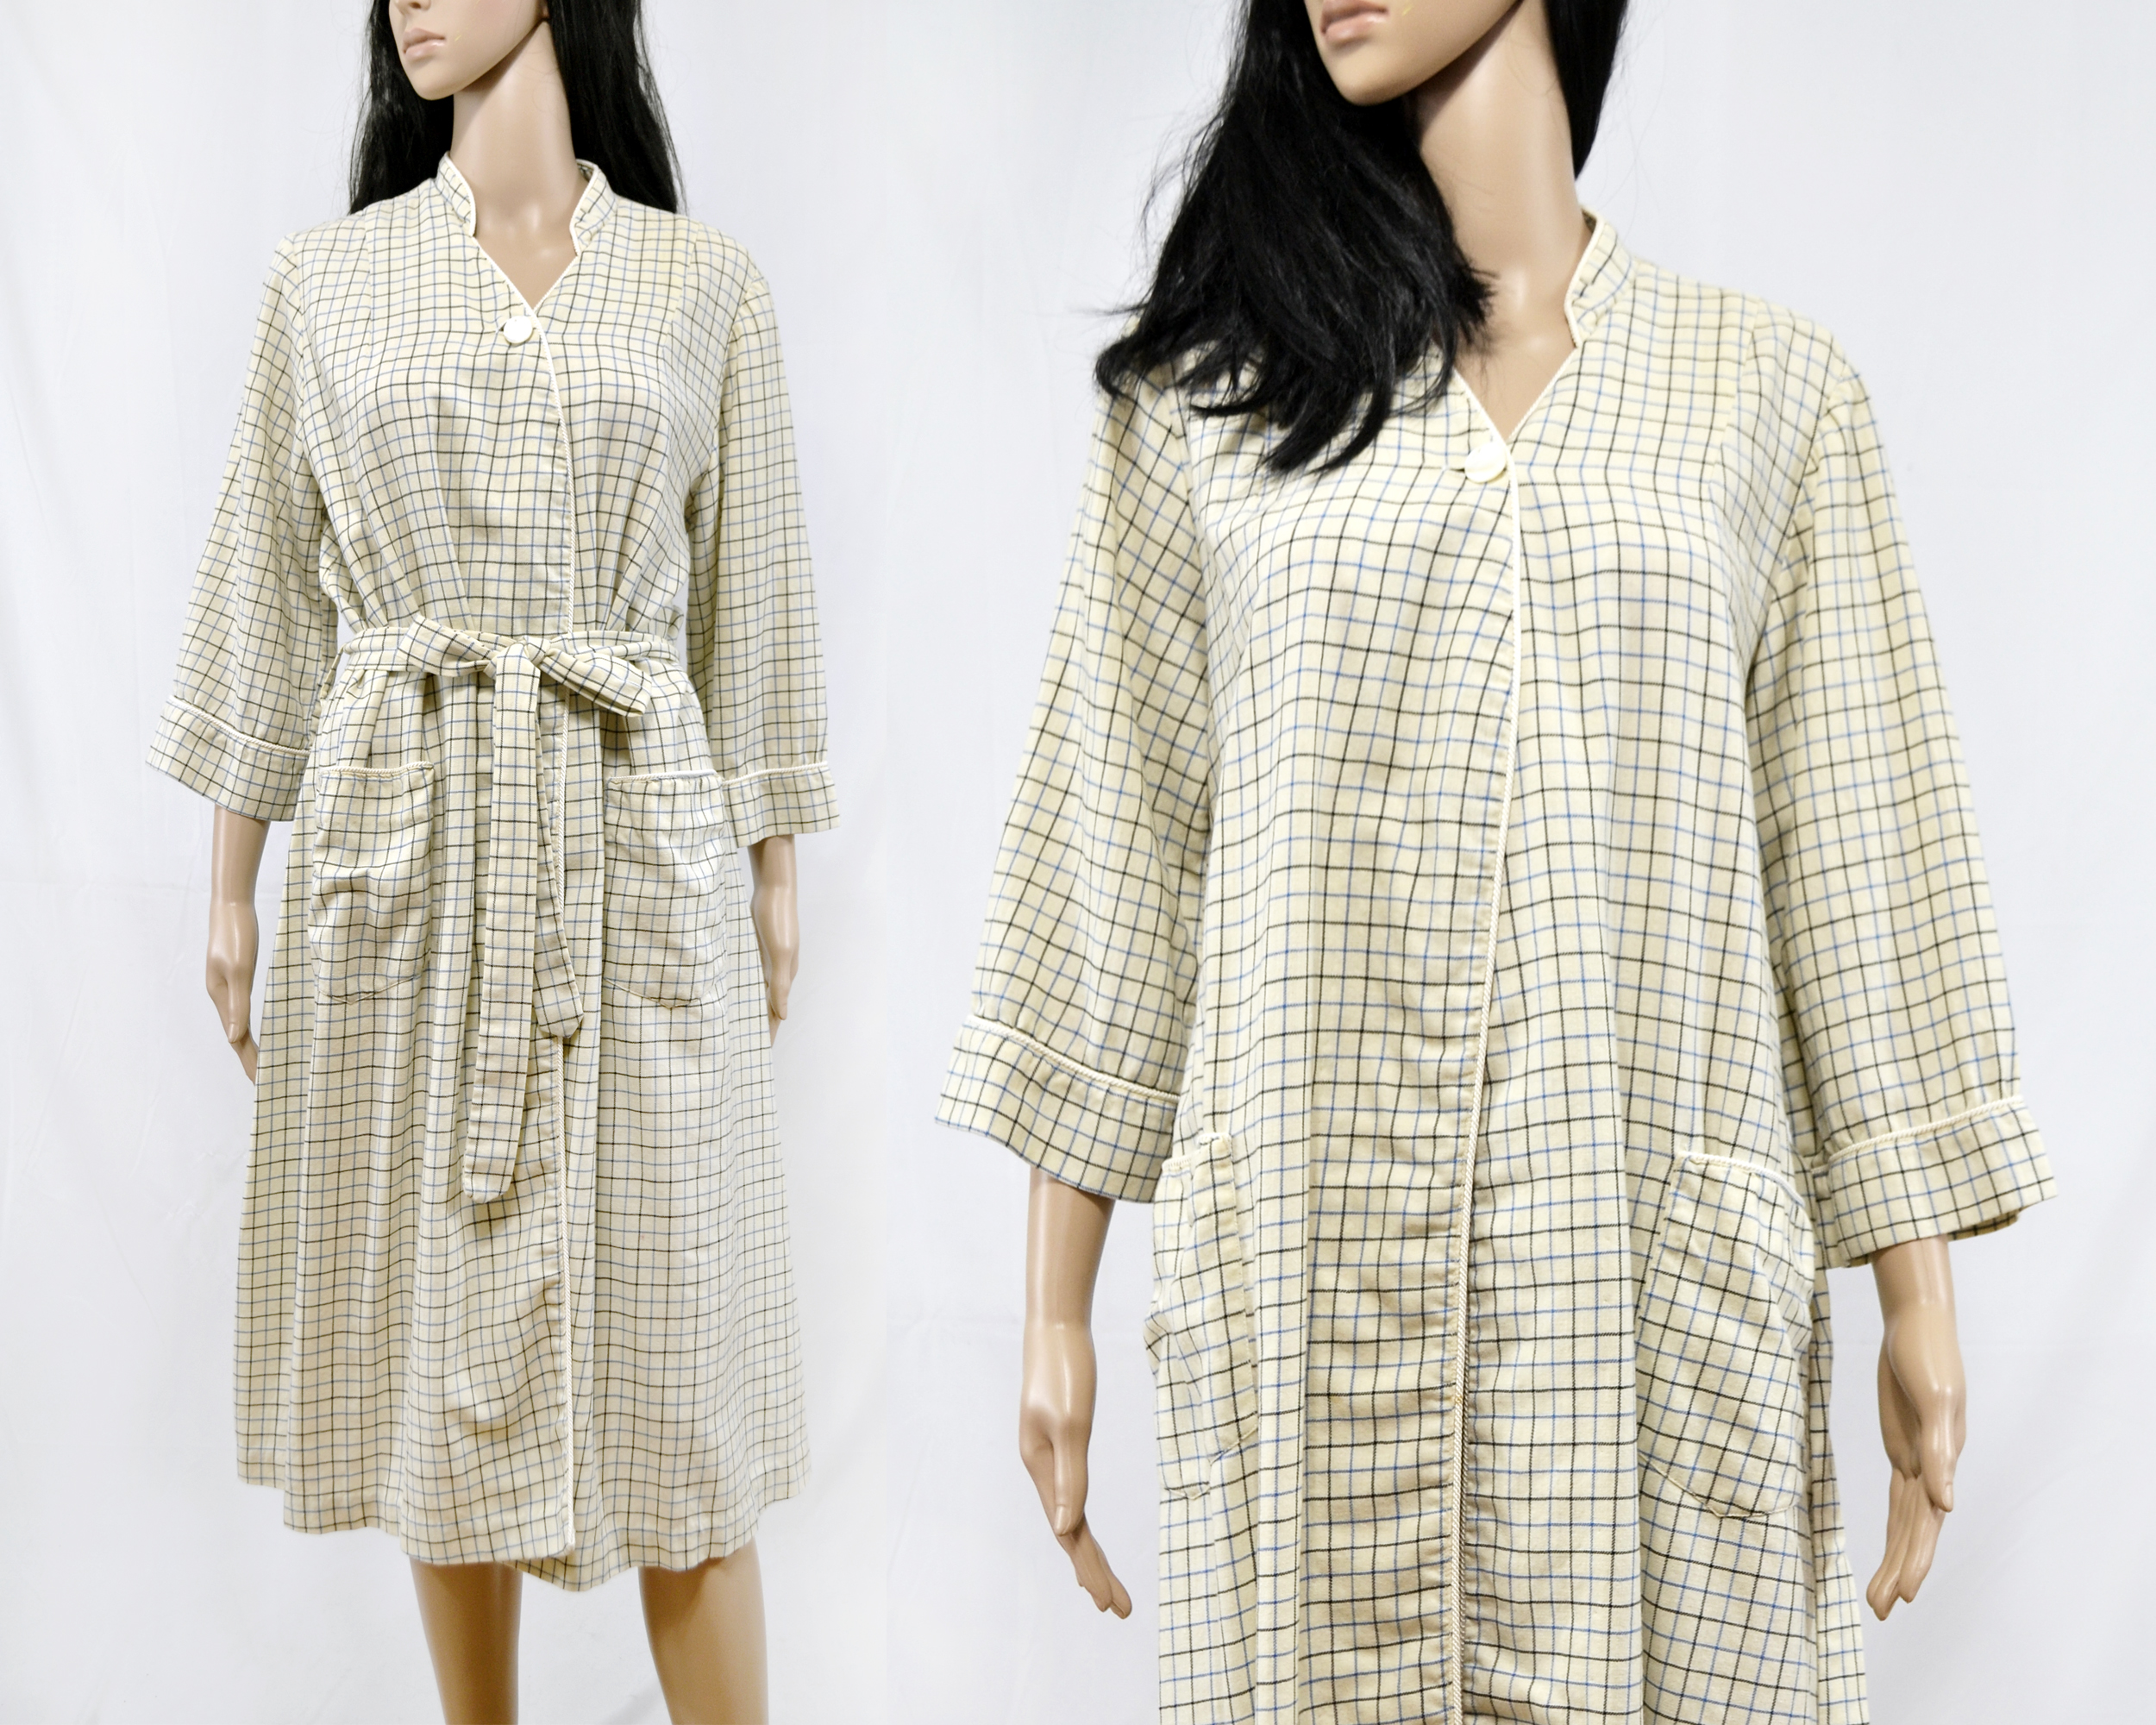 Freeborn Street Vintage Vintage 70s Checked Wool Robe Cream Checkered Lounge Robe Size S M